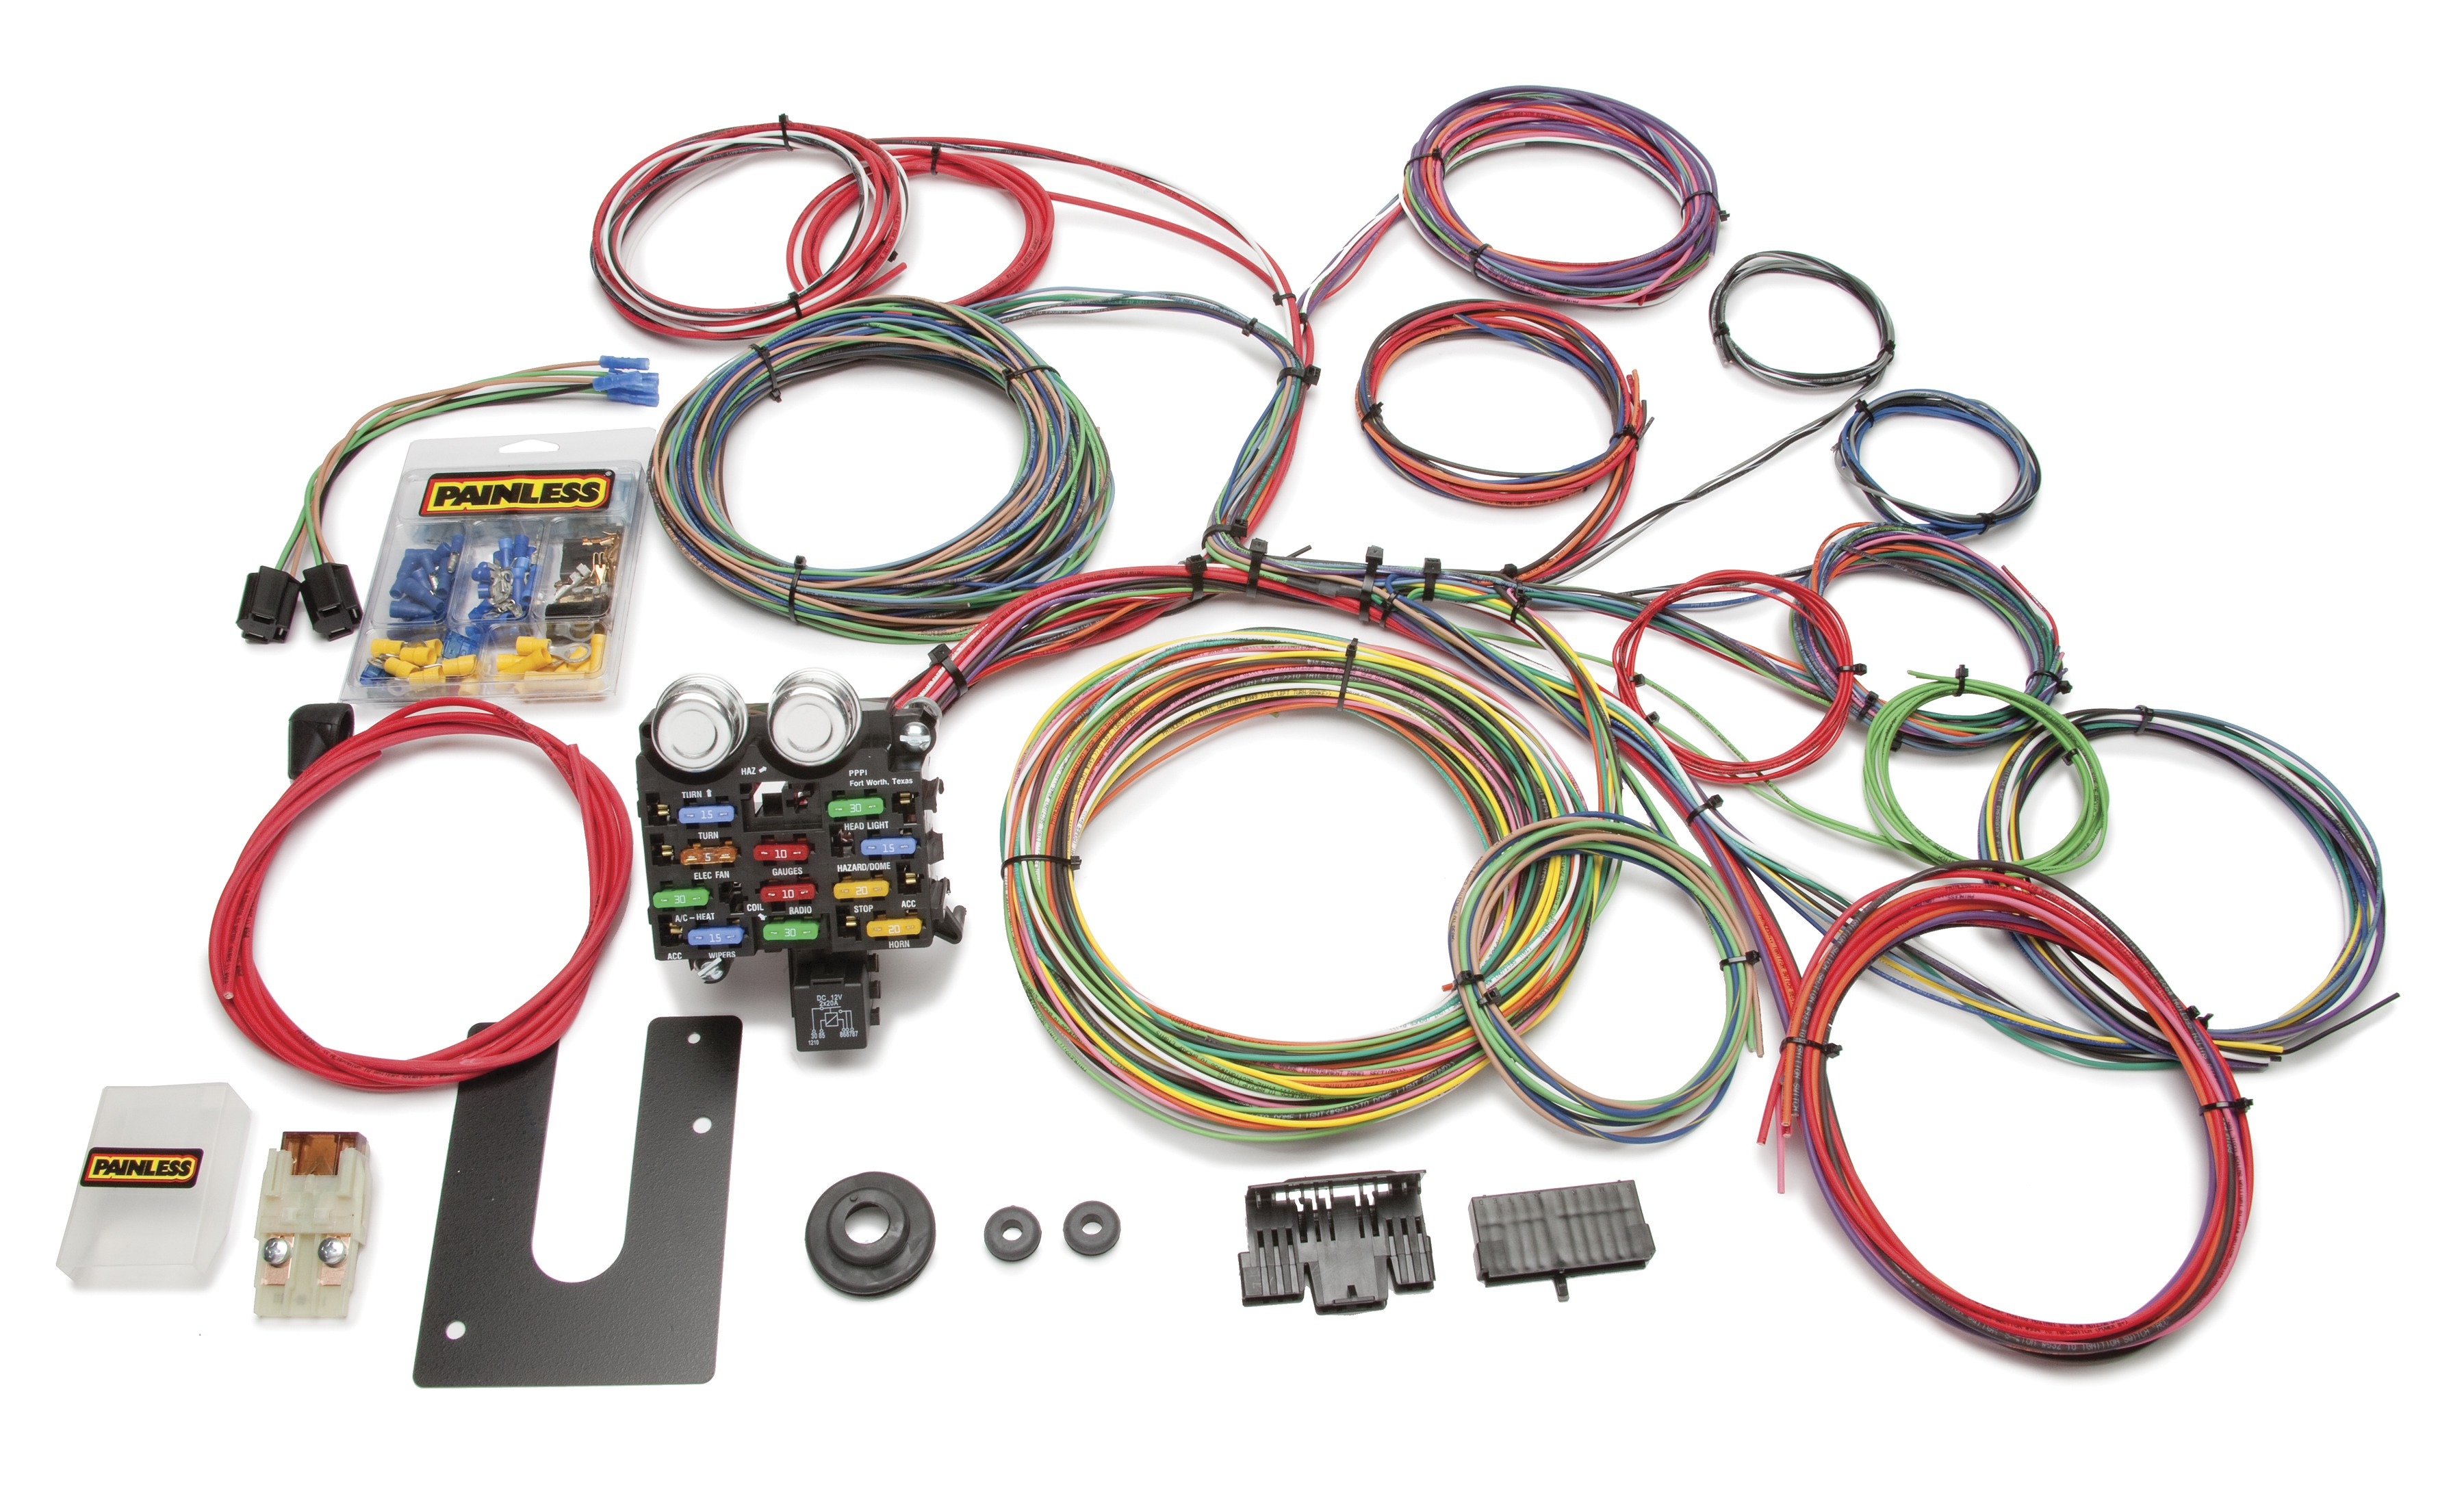 prf 10102?resize\\\=665%2C401 diagrams jeep cj8 wiring harness wiring harness question cj to centech wiring diagram bronco at edmiracle.co